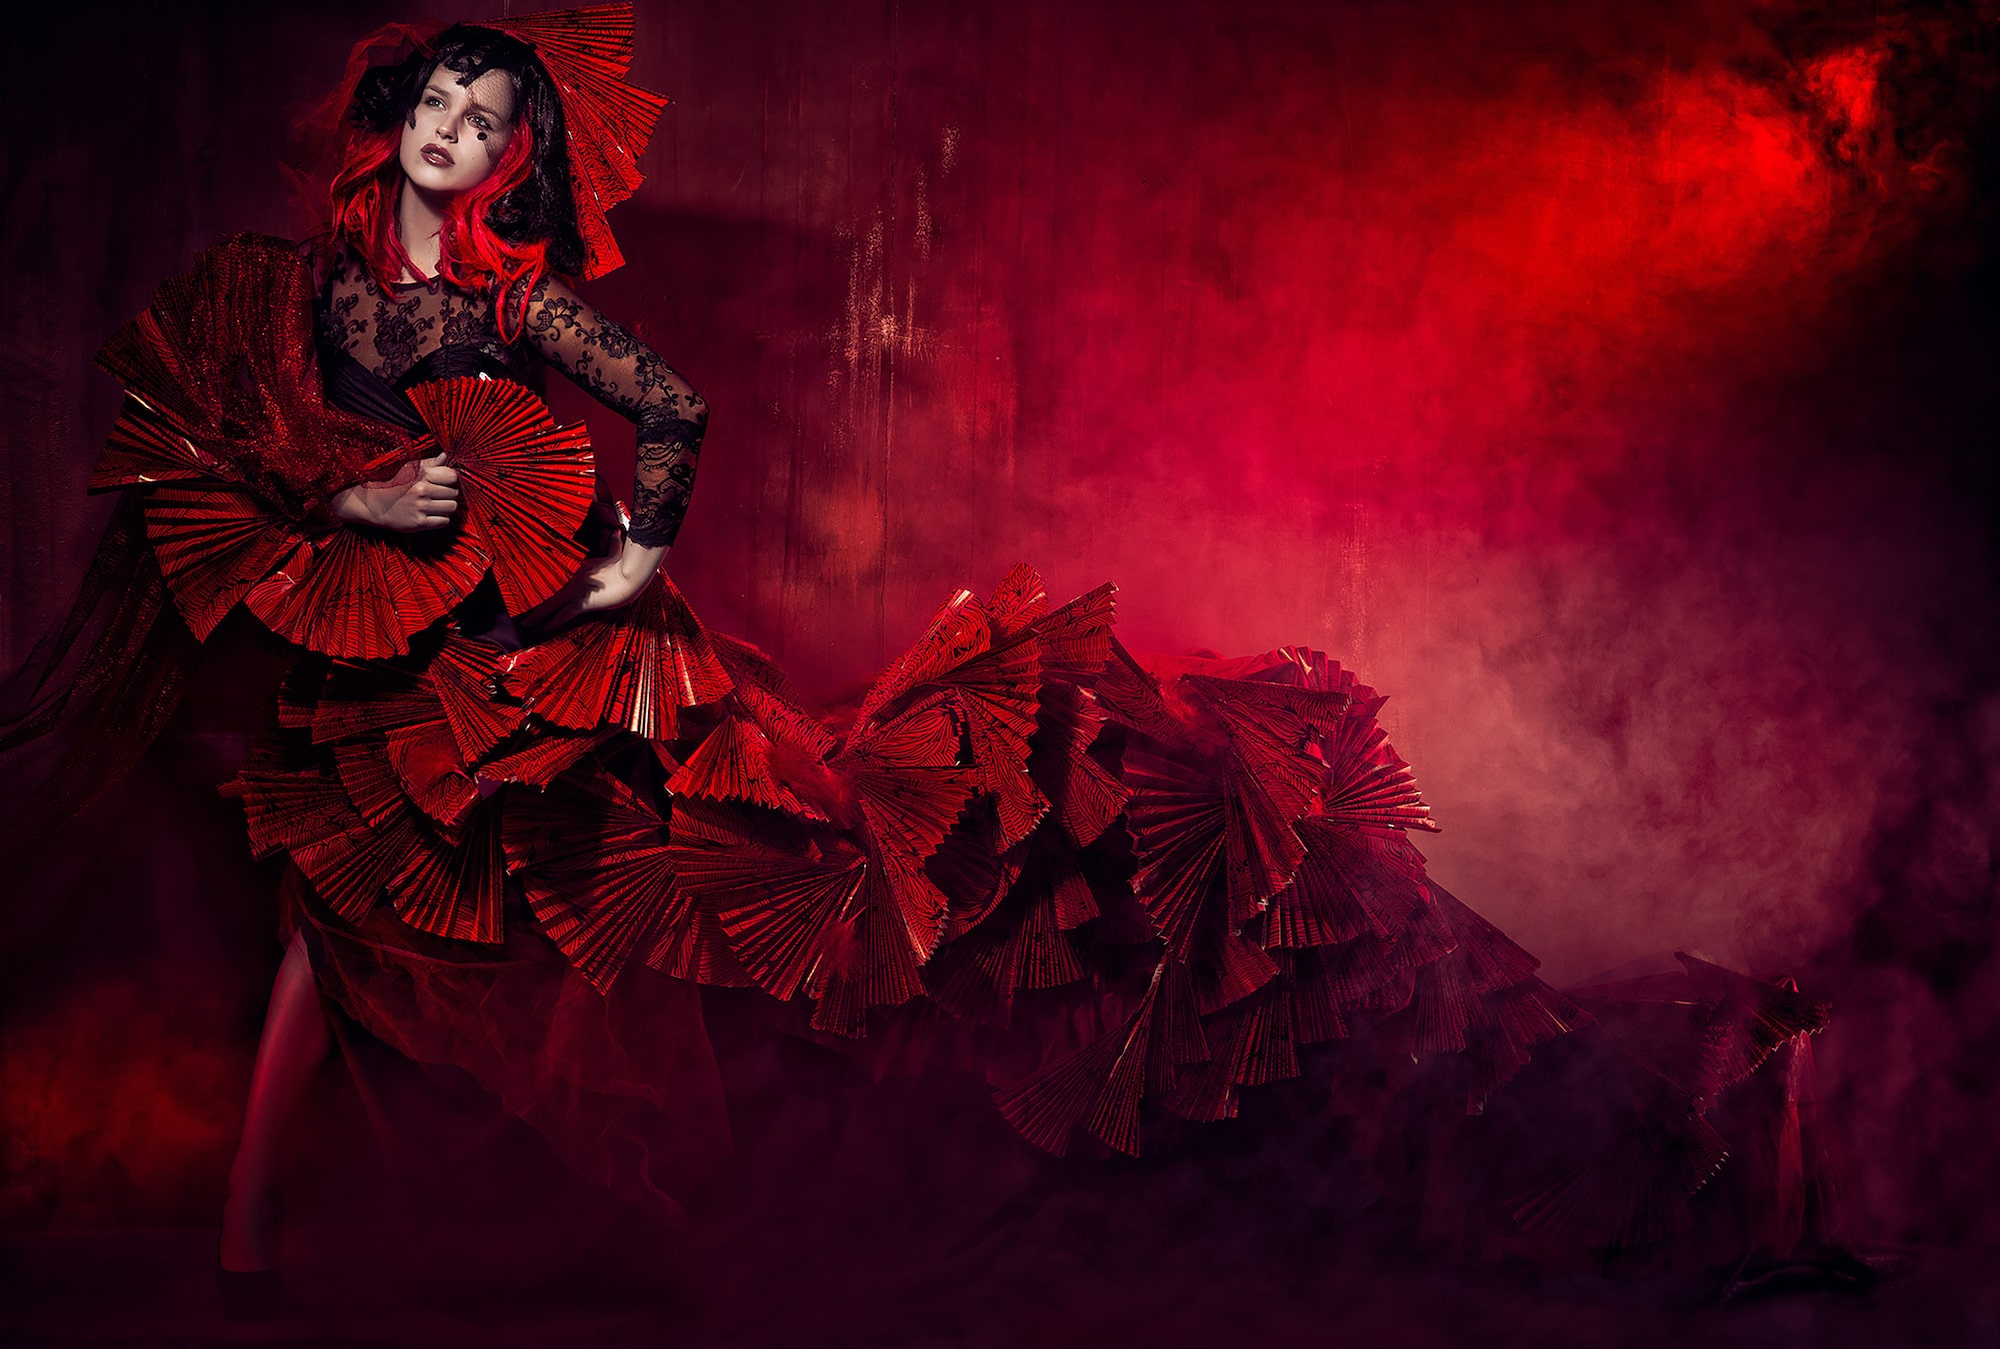 frank doorhof sony alpha 99 lady in a red dress made from paper fans with red smoke in the background